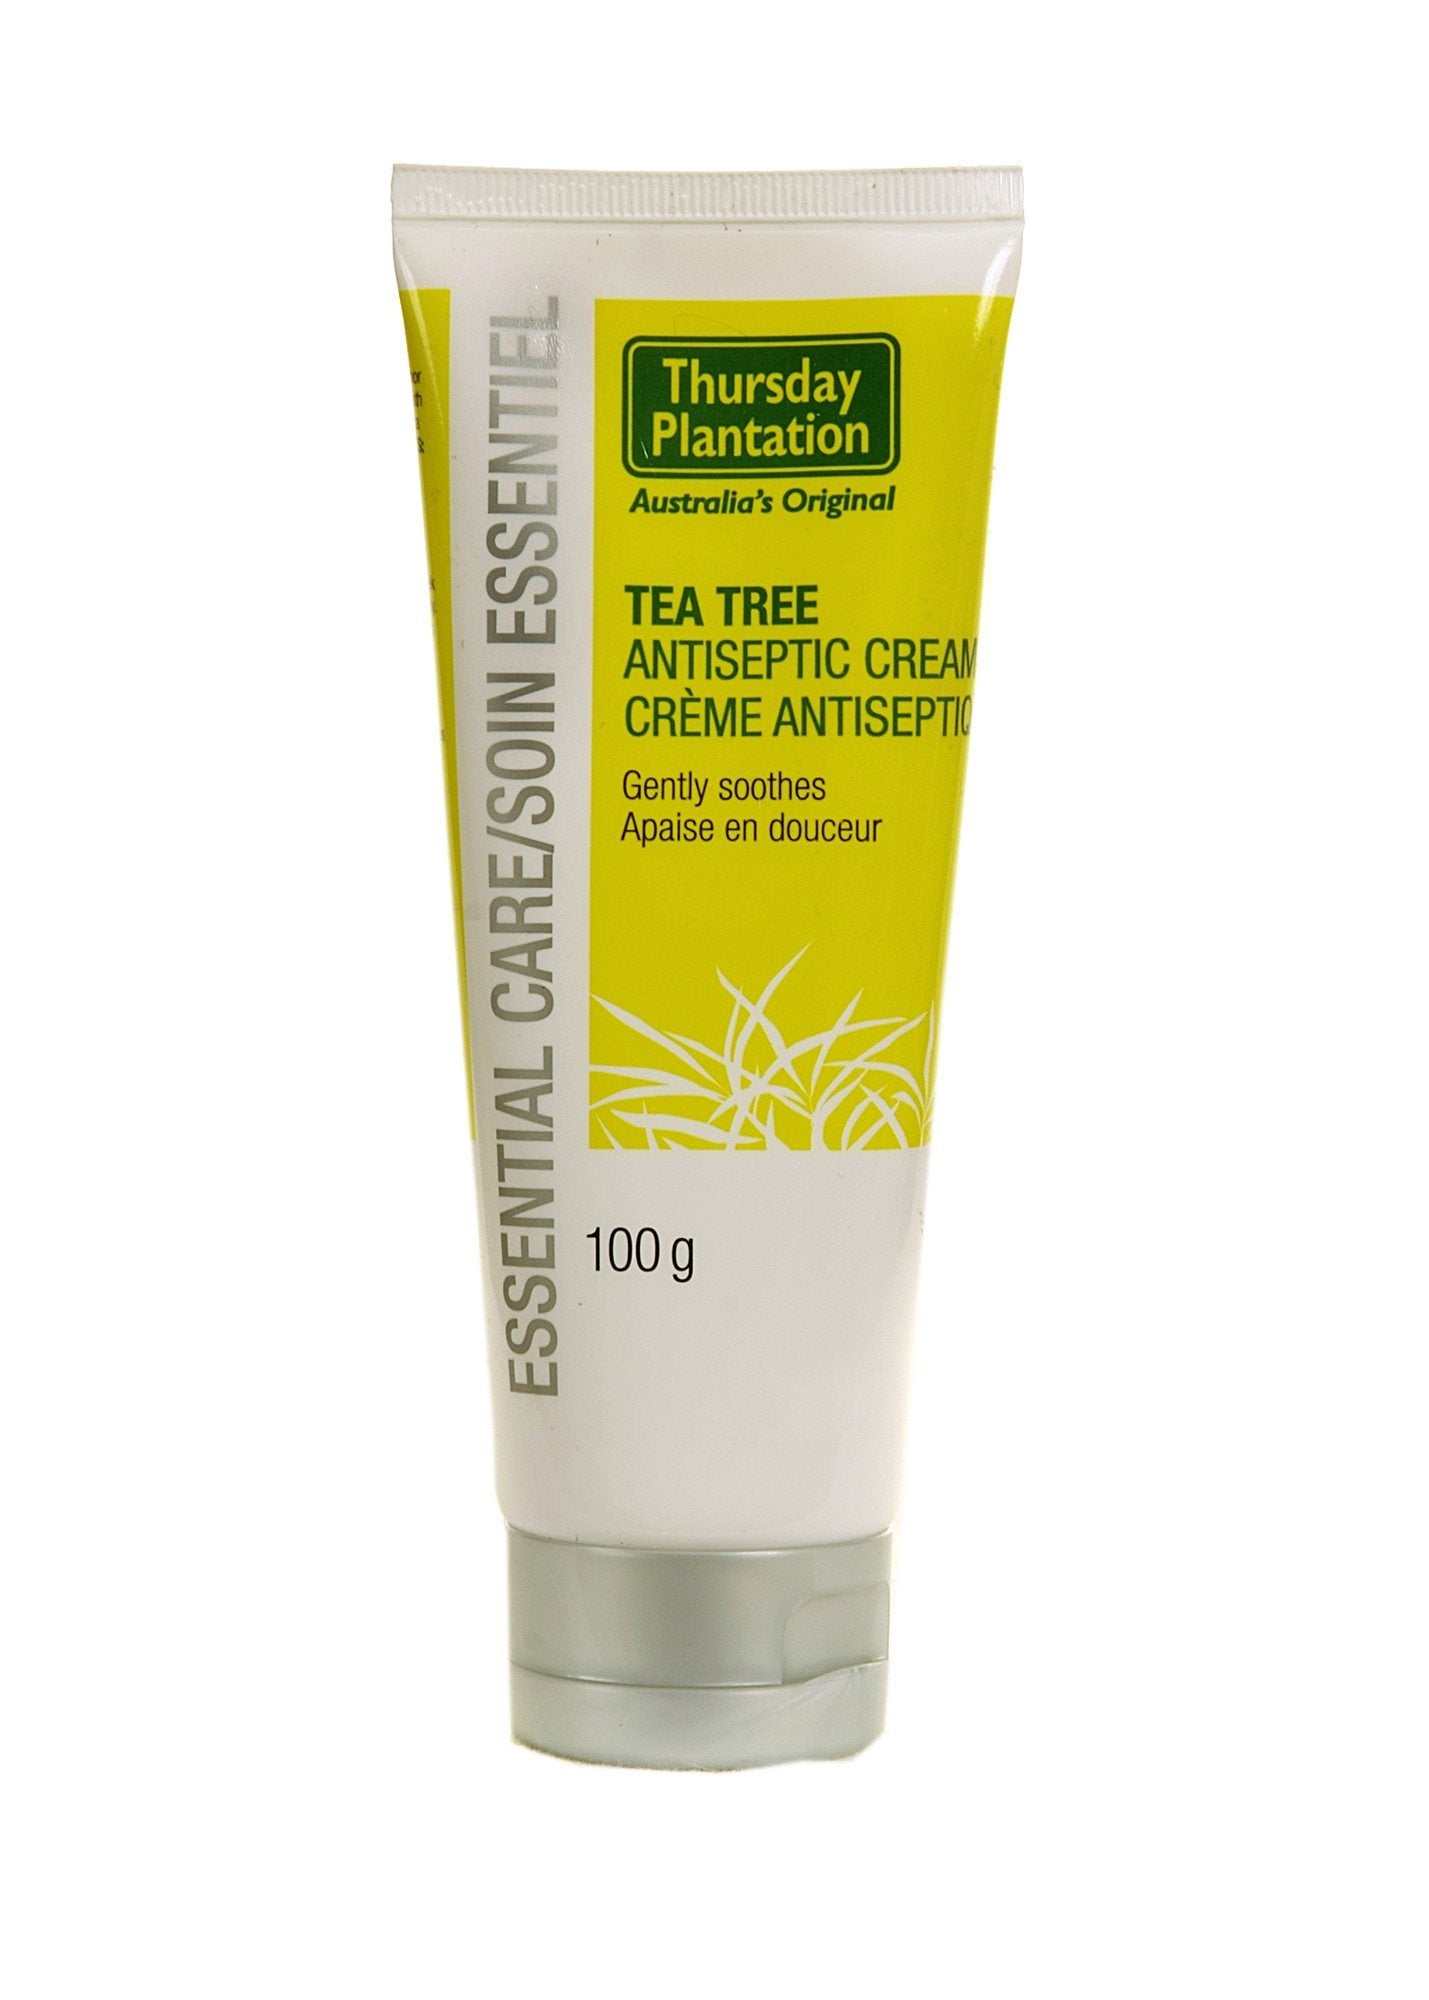 Supplements & Vitamins - Thursday Plantation - Tea Tree Antiseptic Cream, 100g